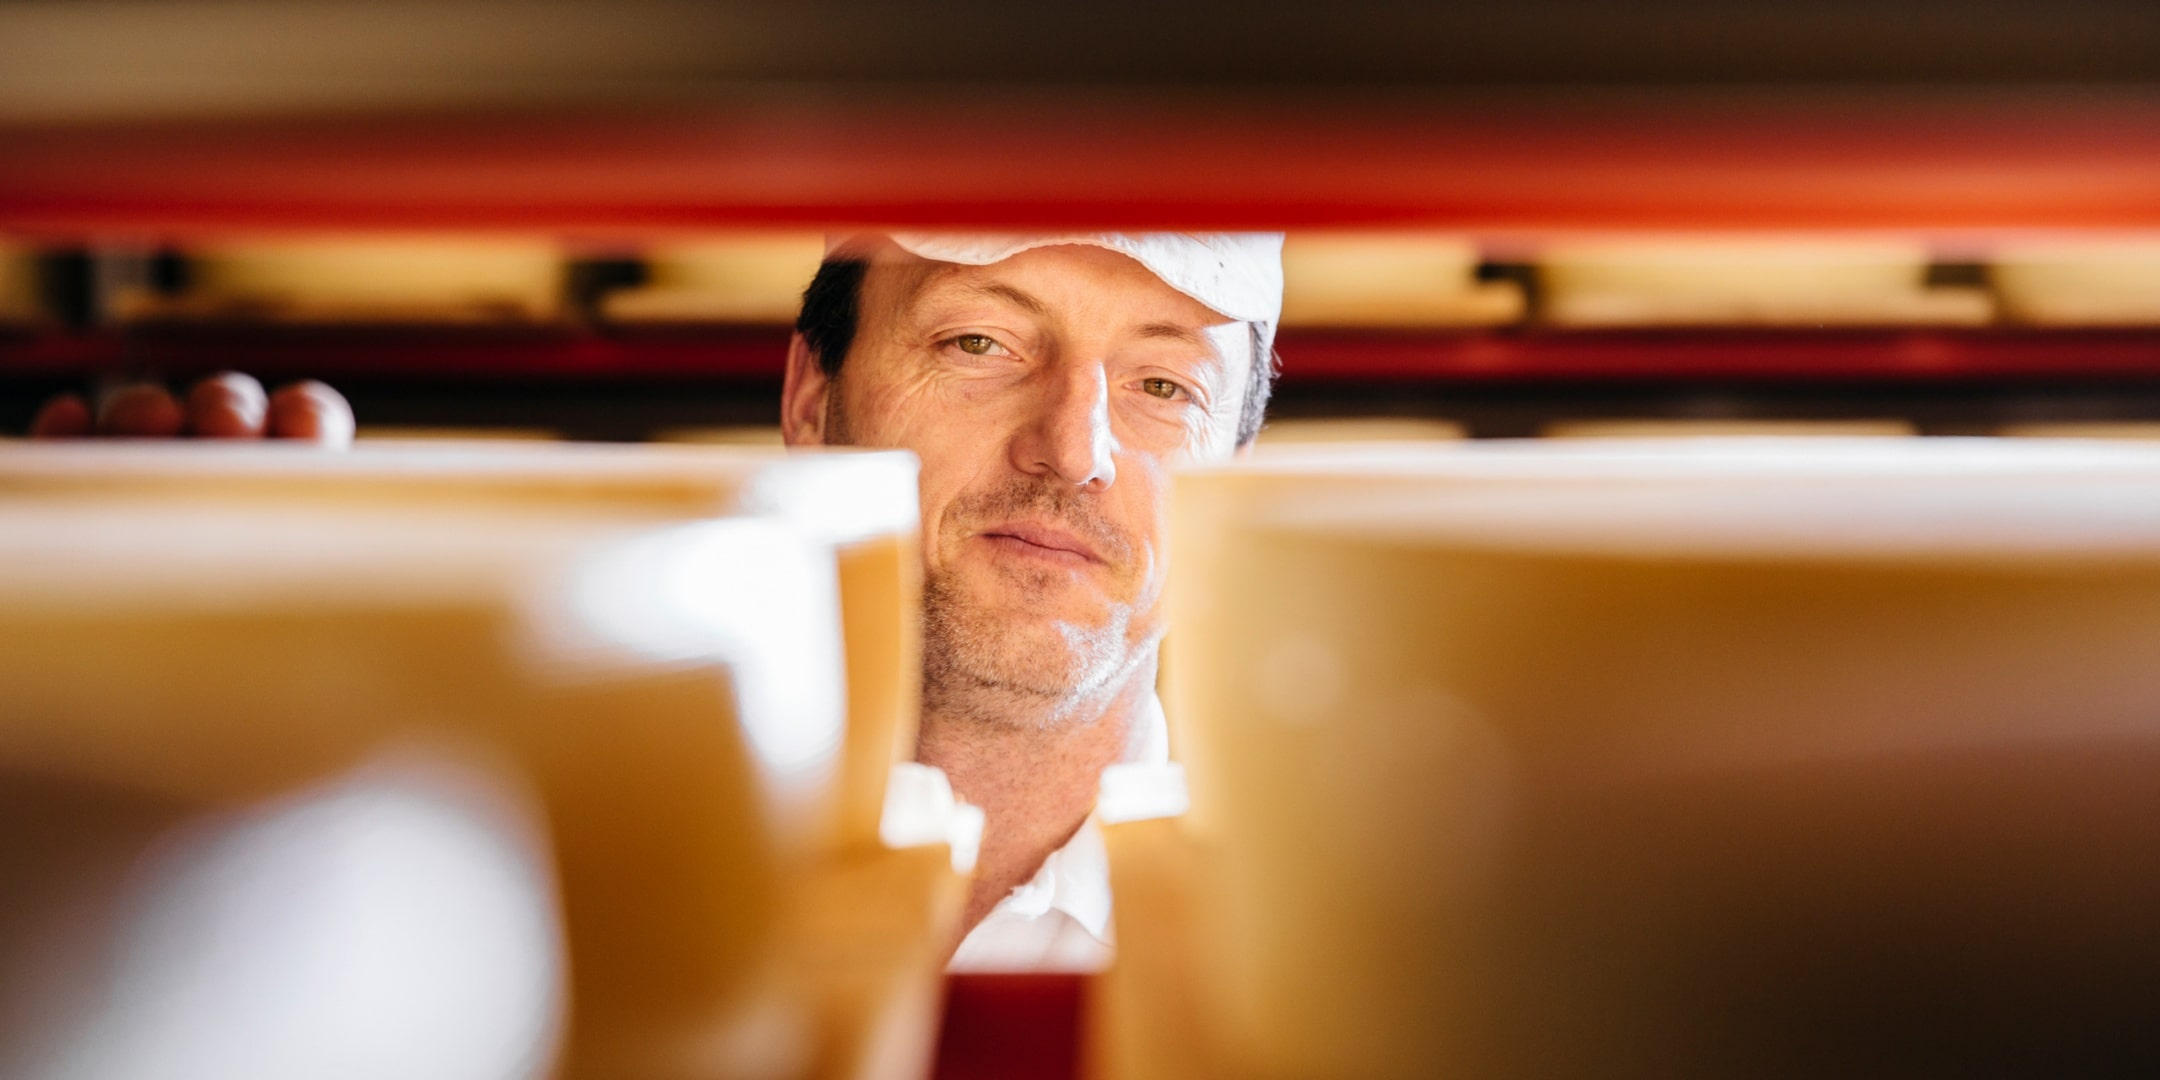 A man looks into the camera through a shelf full of cheeses